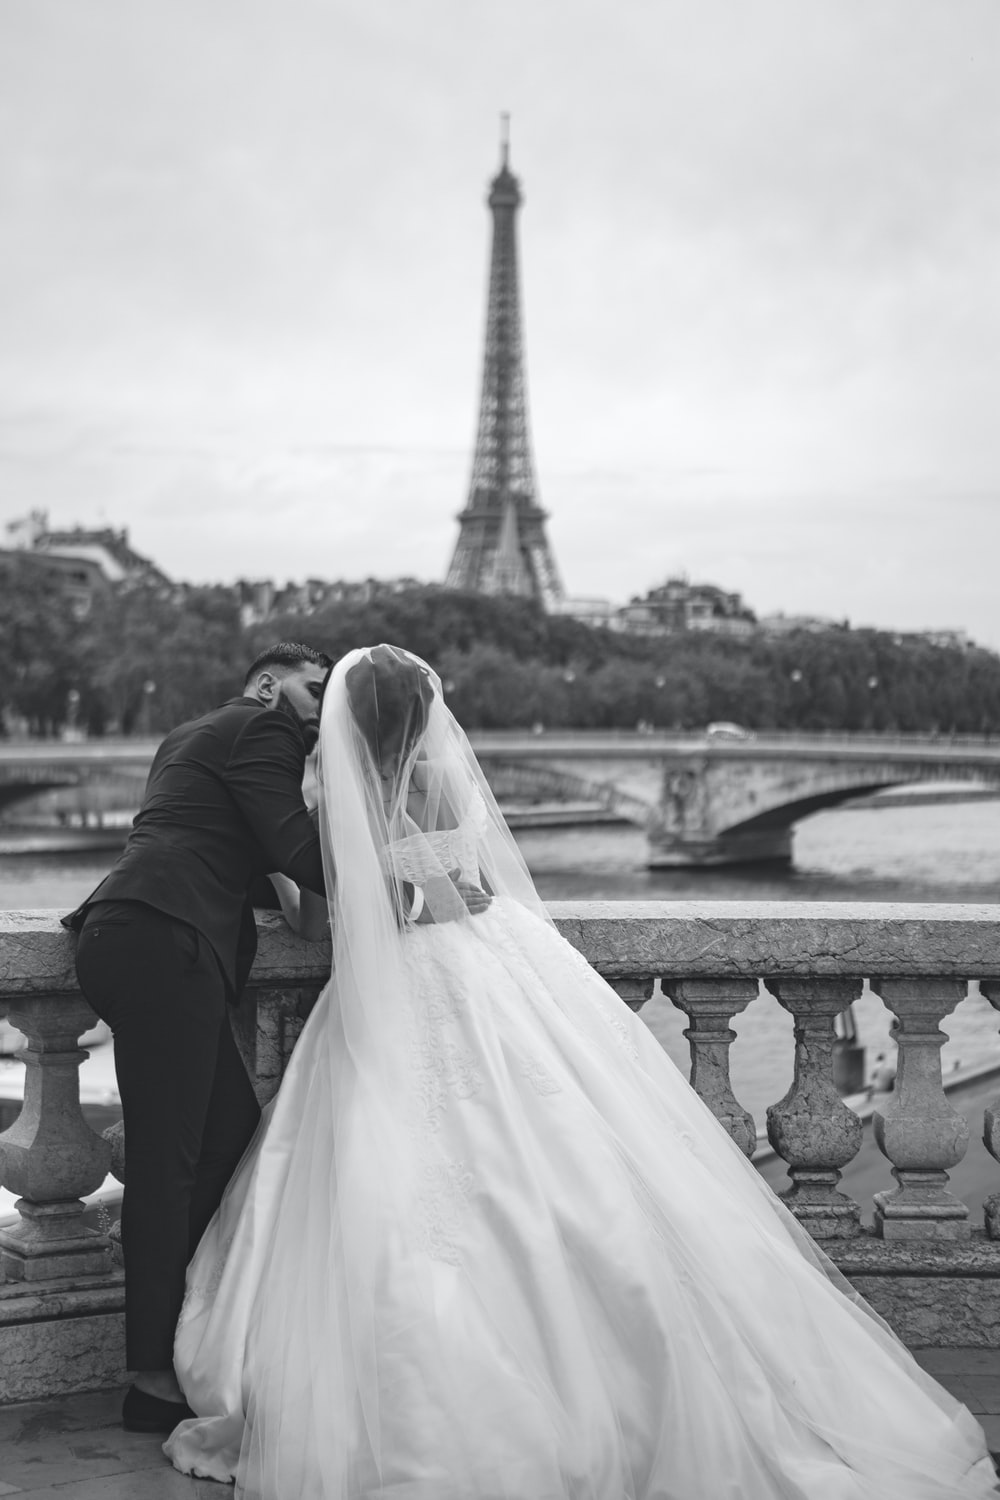 grayscale photography of wedding couple in front of Eiffel Tower